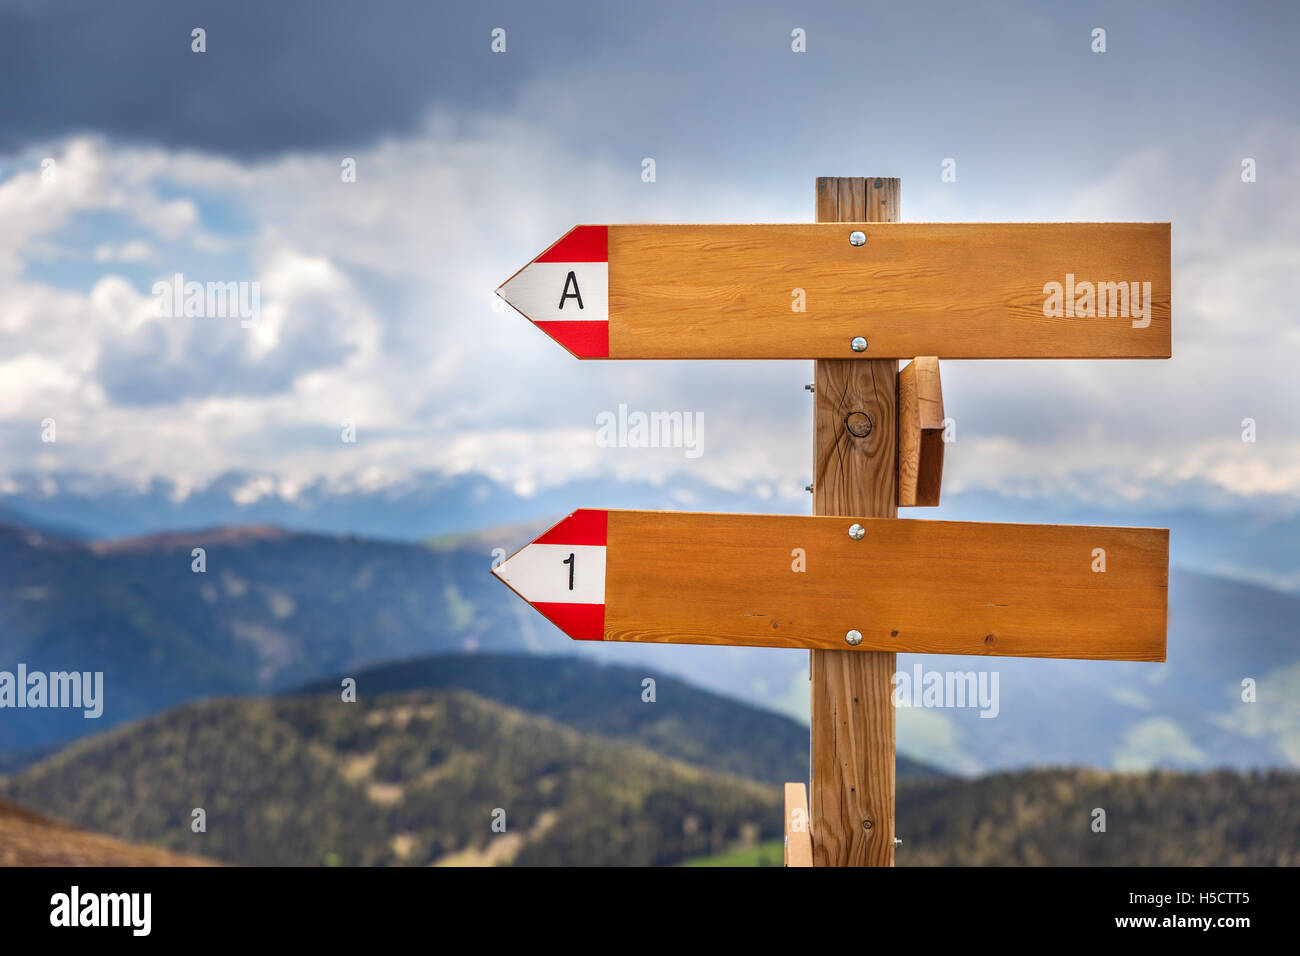 Empty wooden signpost in the mountains with bad weather - Stock Image